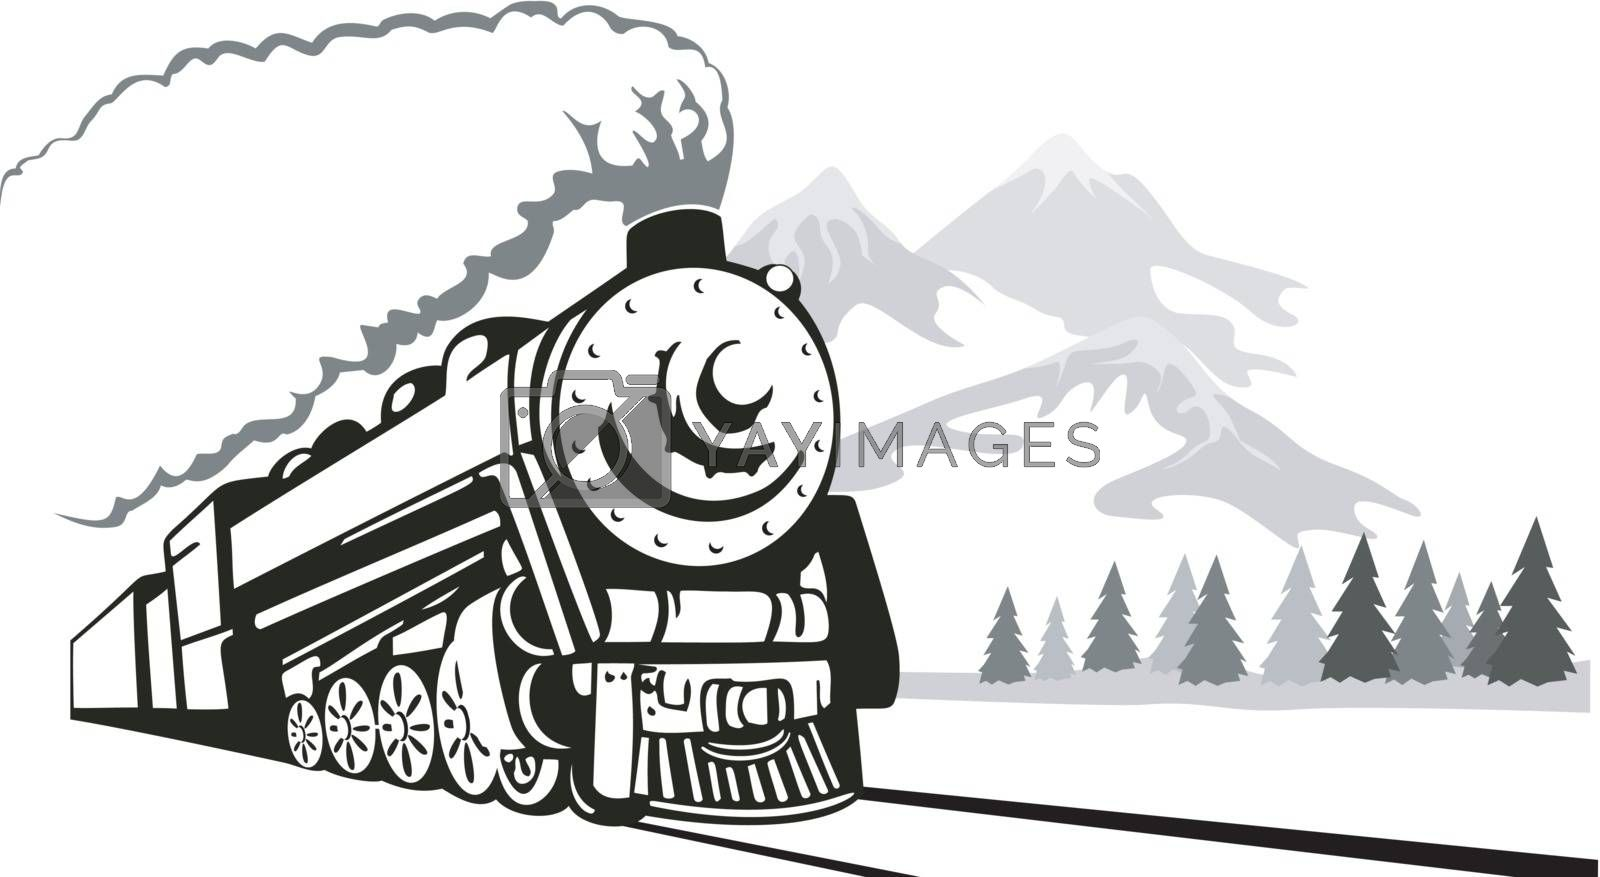 Illustration of a vintage train on isolated background done in retro style.